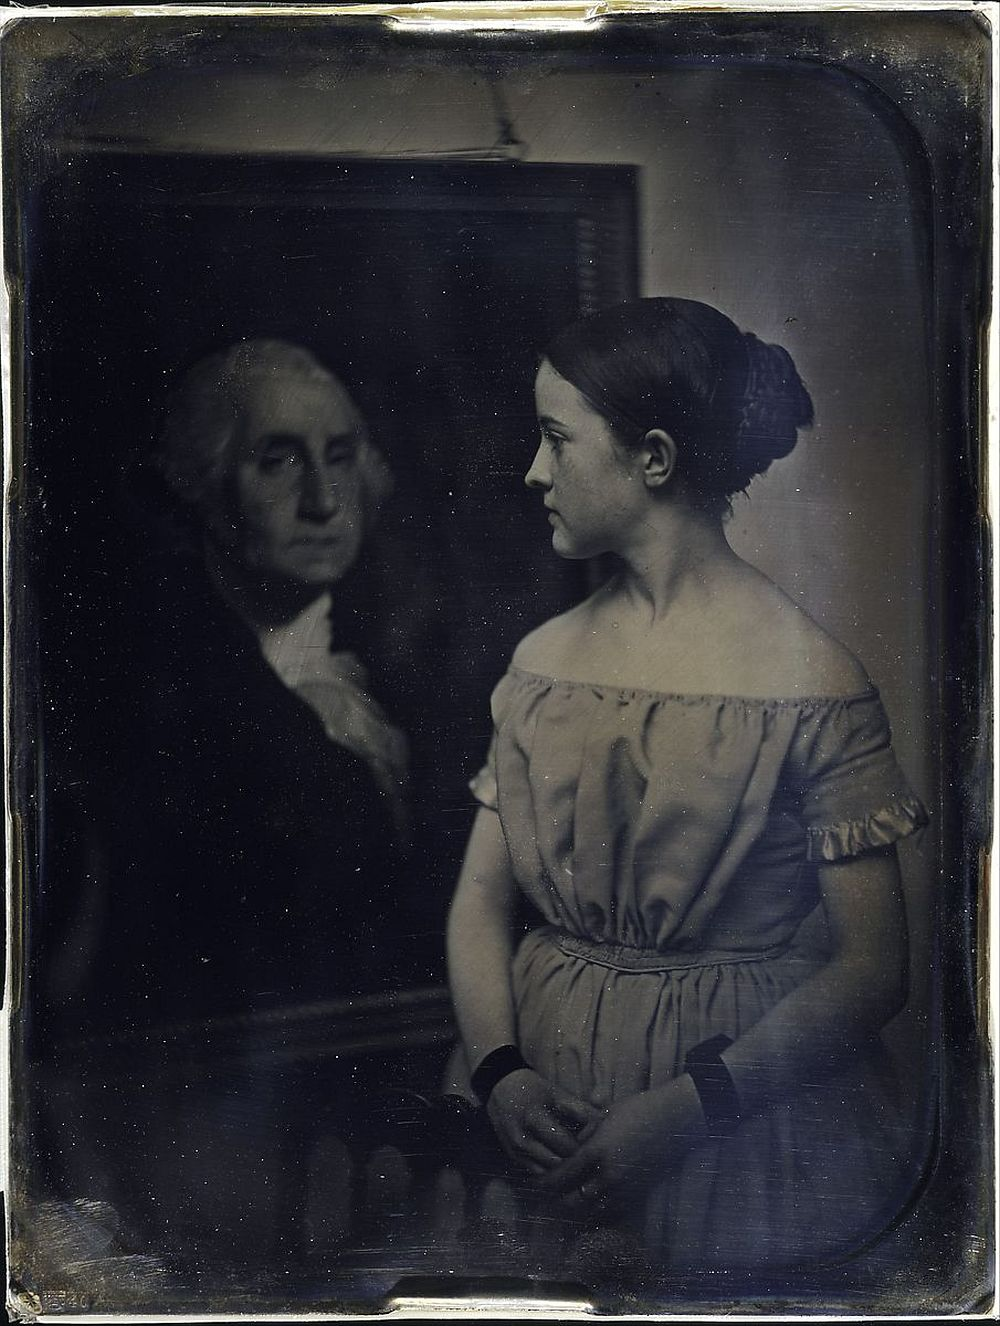 Southworth and Hawes (American, active 1843–1863),  [Girl with Portrait of George Washingtion], ca. 1850, Daguerreotype; 21.6 x 16.5 cm (8 1/2 x 6 1/2 in.),  The Metropolitan Museum of Art, New York, Gift of I. N. Phelps Stokes, Edward S. Hawes, Alice Mary Hawes, and Marion Augusta Hawes, 1937 (37.14.53-) http://www.metmuseum.org/Collections/search-the-collections/268354